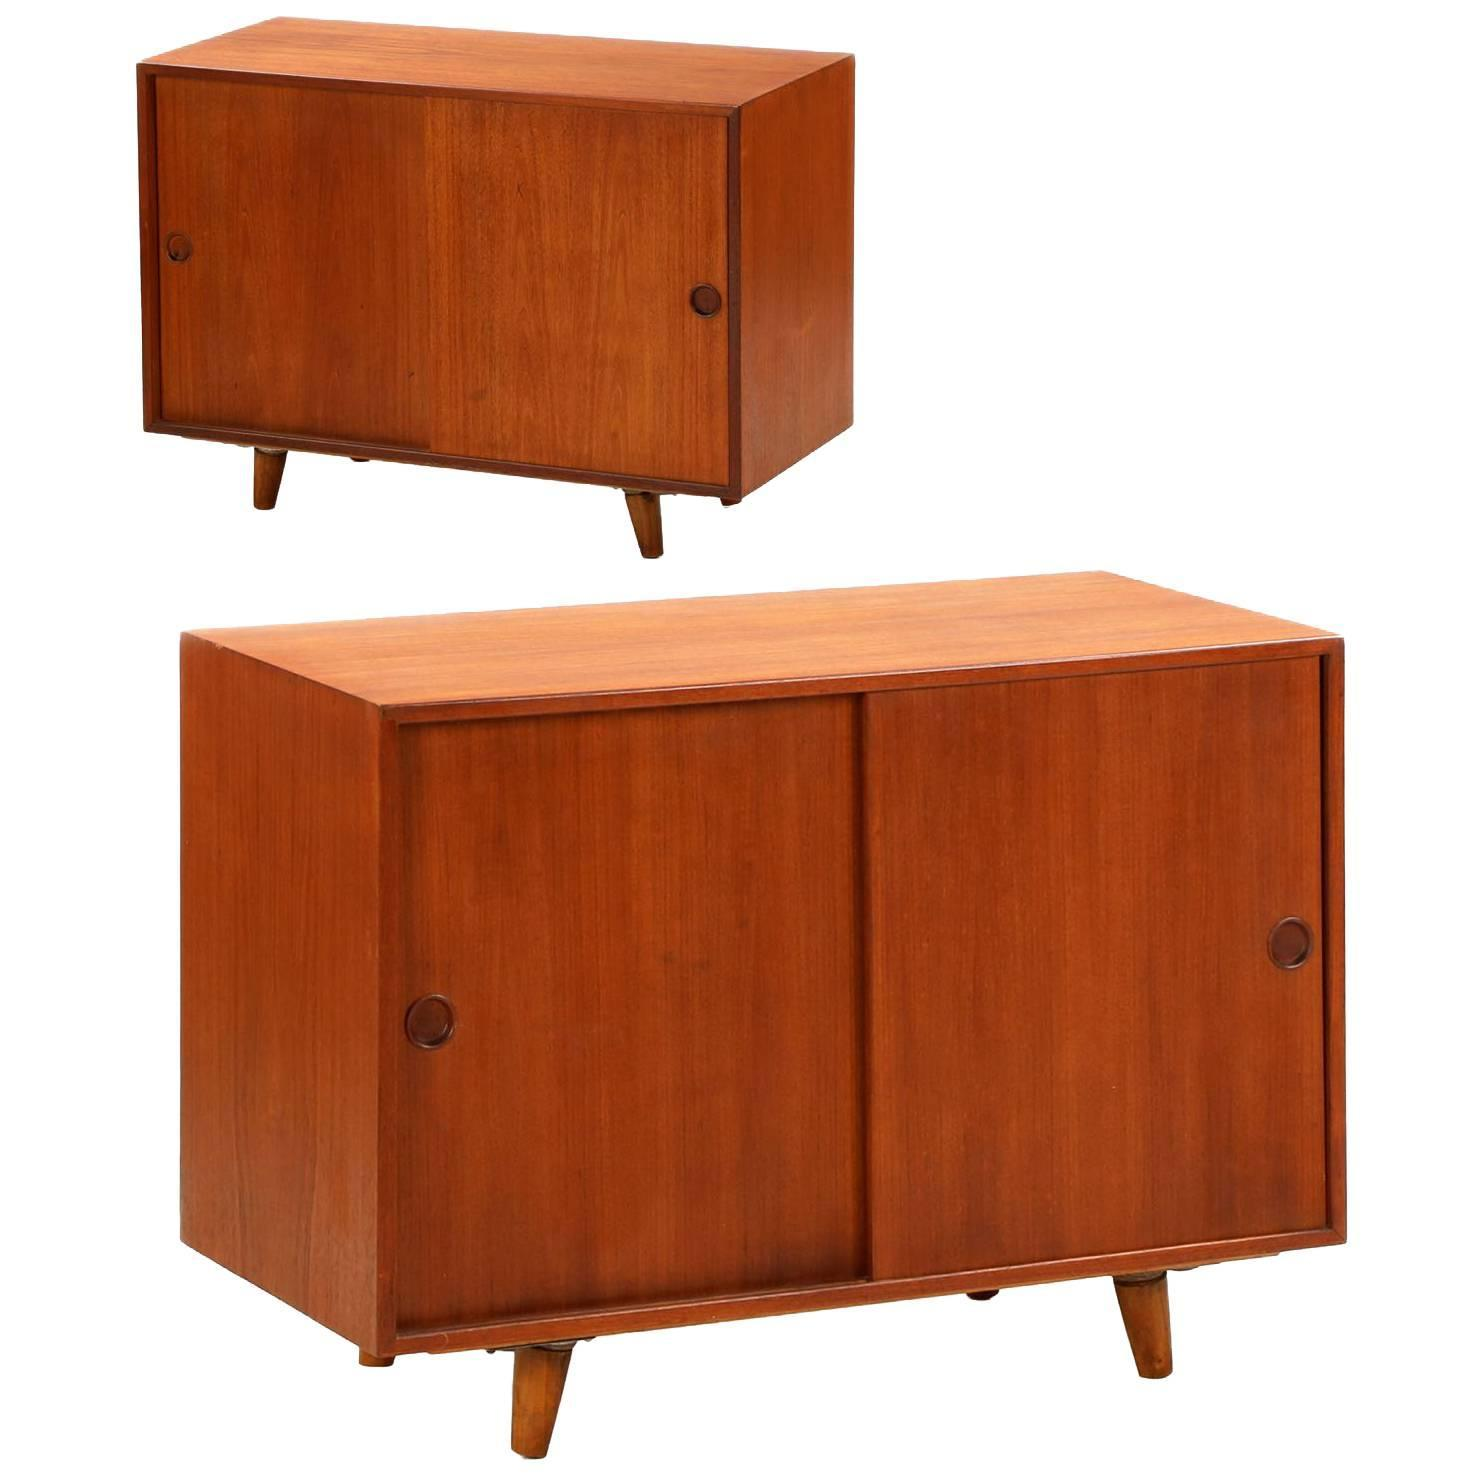 Pair of danish mid century modern teak cabinets nightstands by peter hvidt for sale at 1stdibs